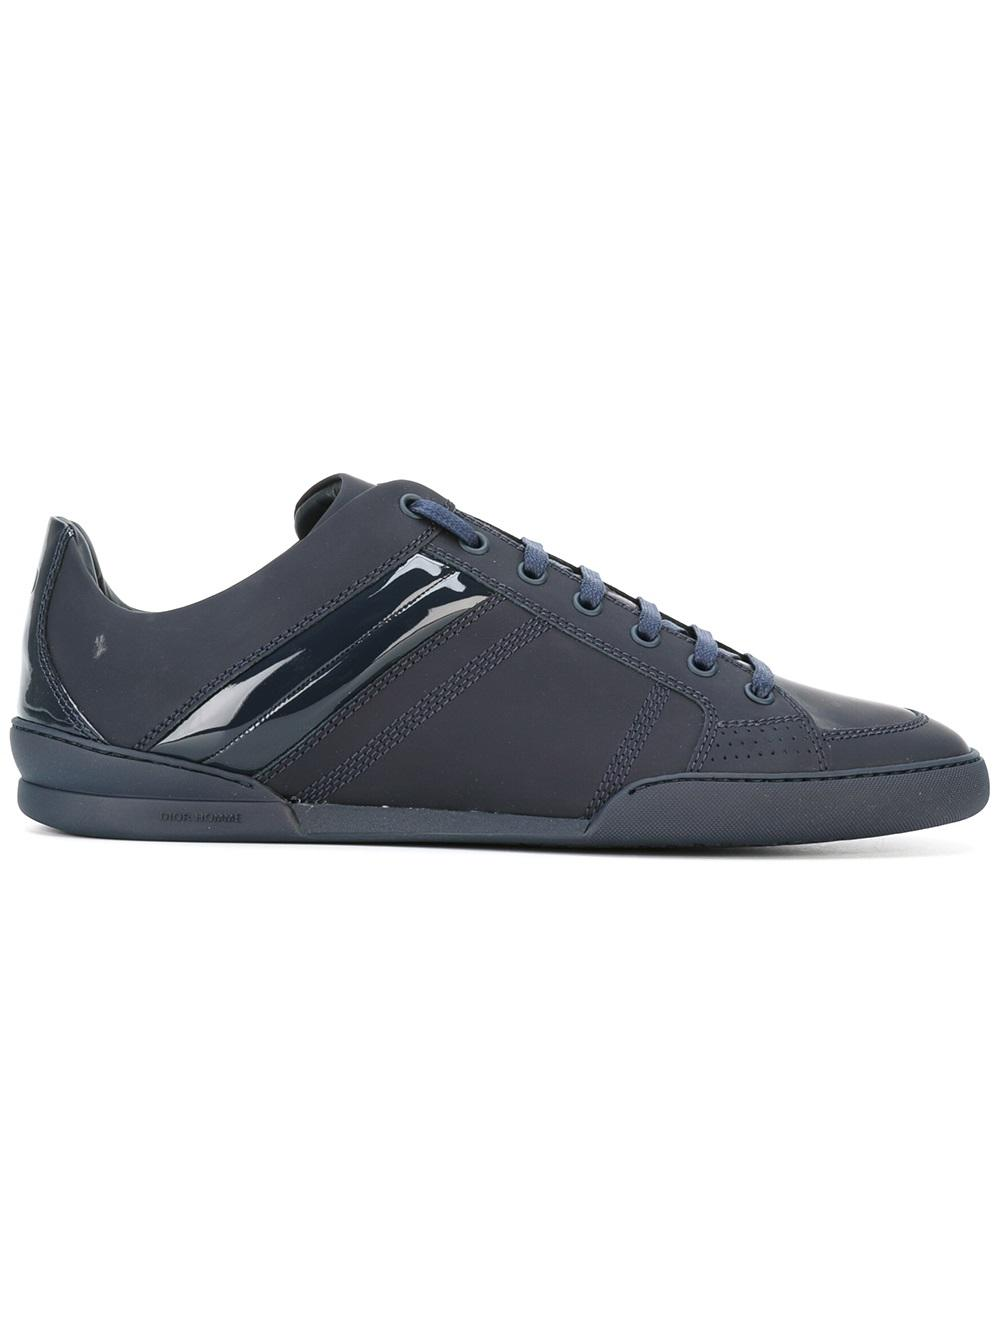 Sneakers dior homme soldes